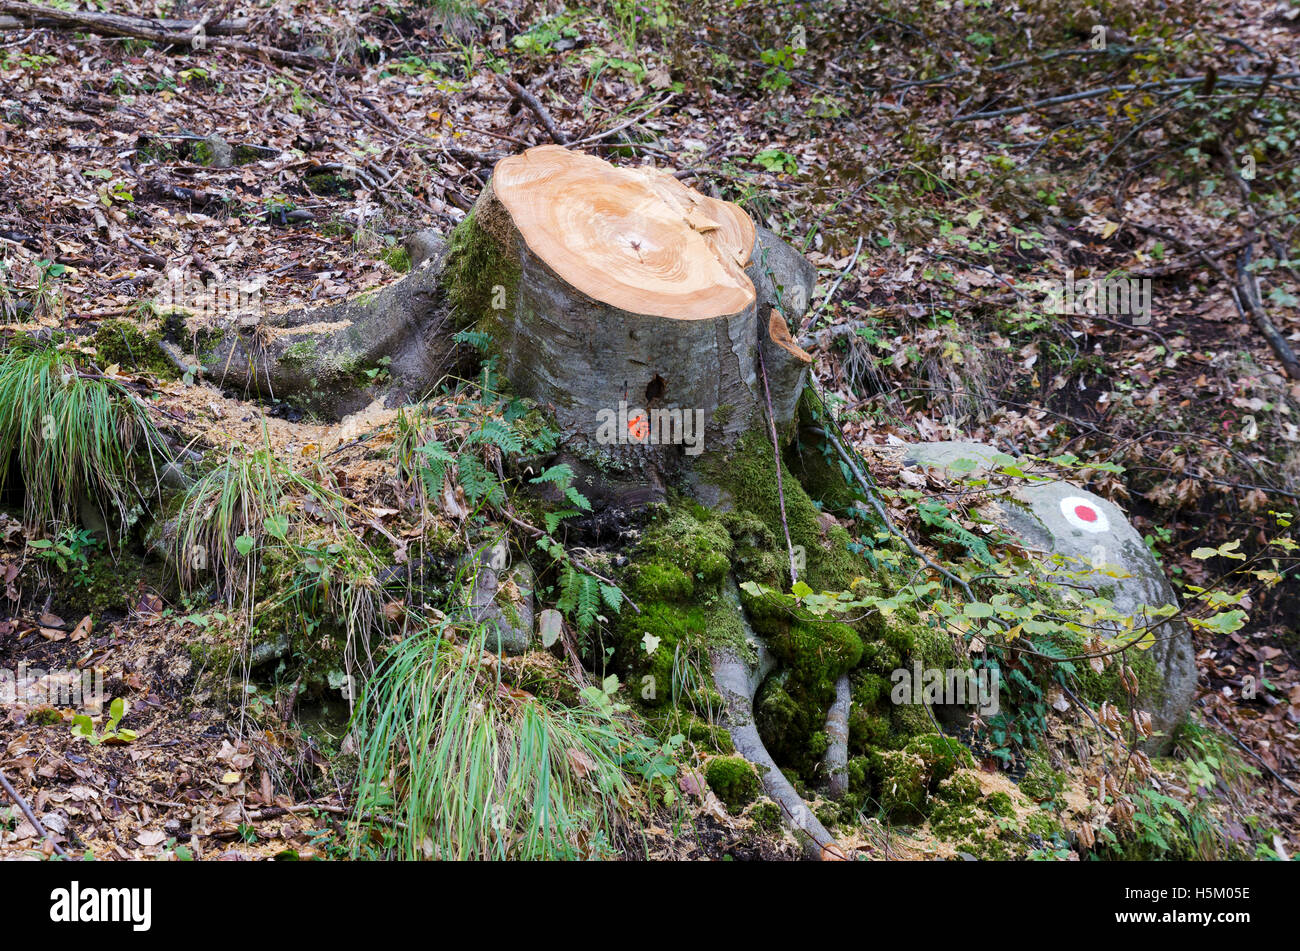 Deciduous tree cut in a controlled logging.  Lumber industry - Stock Image